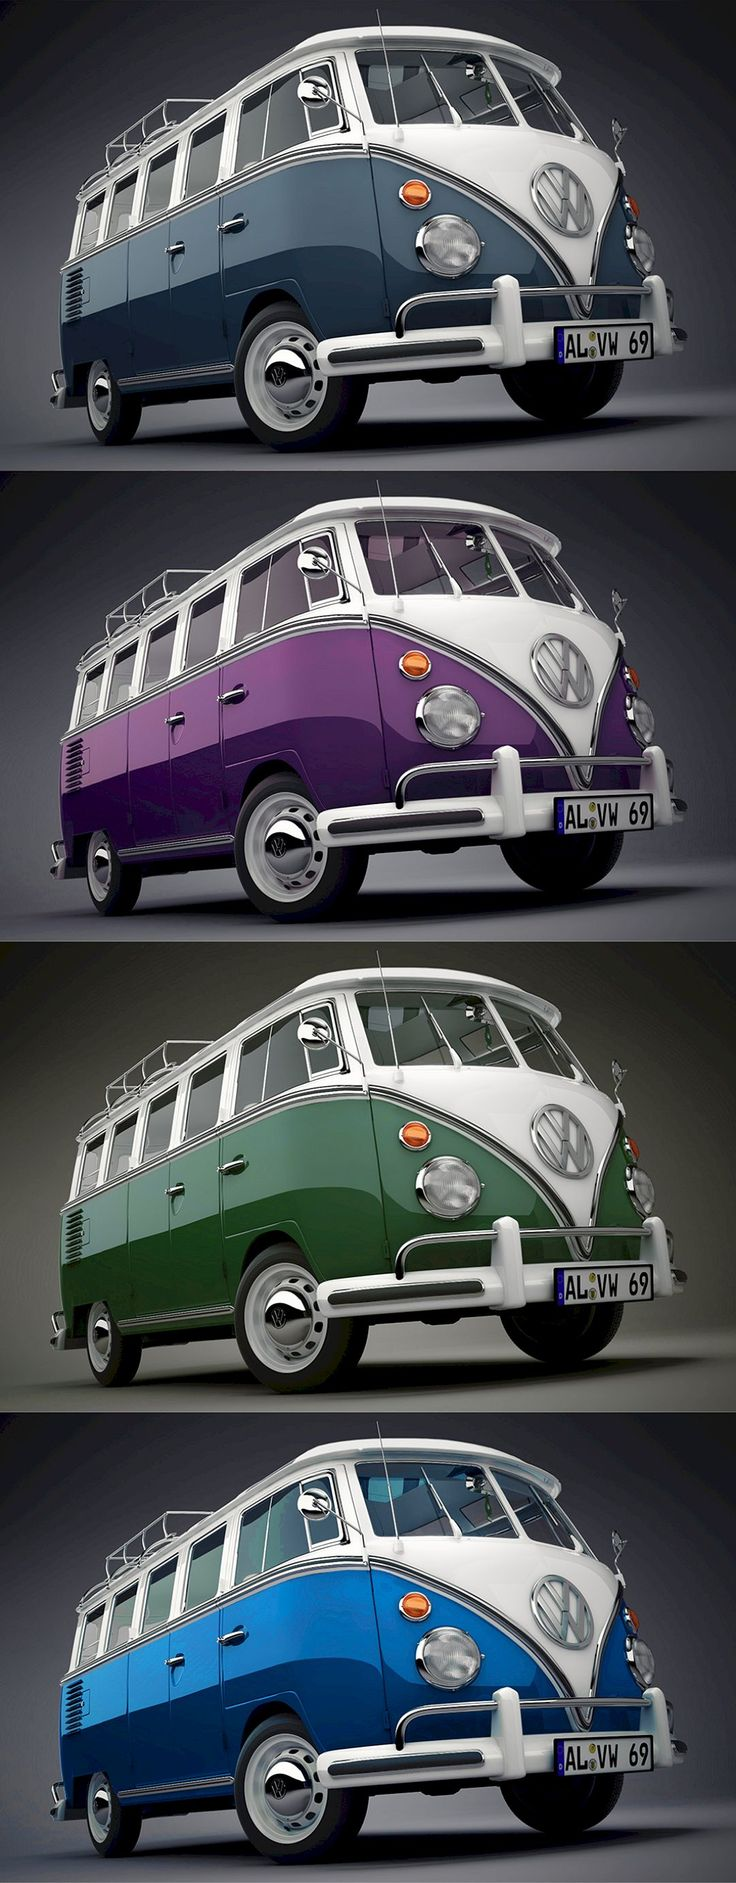 Top 40+ Vintage Volkswagen Vehicle and Accessories Collections Items example https://pistoncars.com/top-40-vintage-volkswagen-vehicle-accessories-collections-items-5876